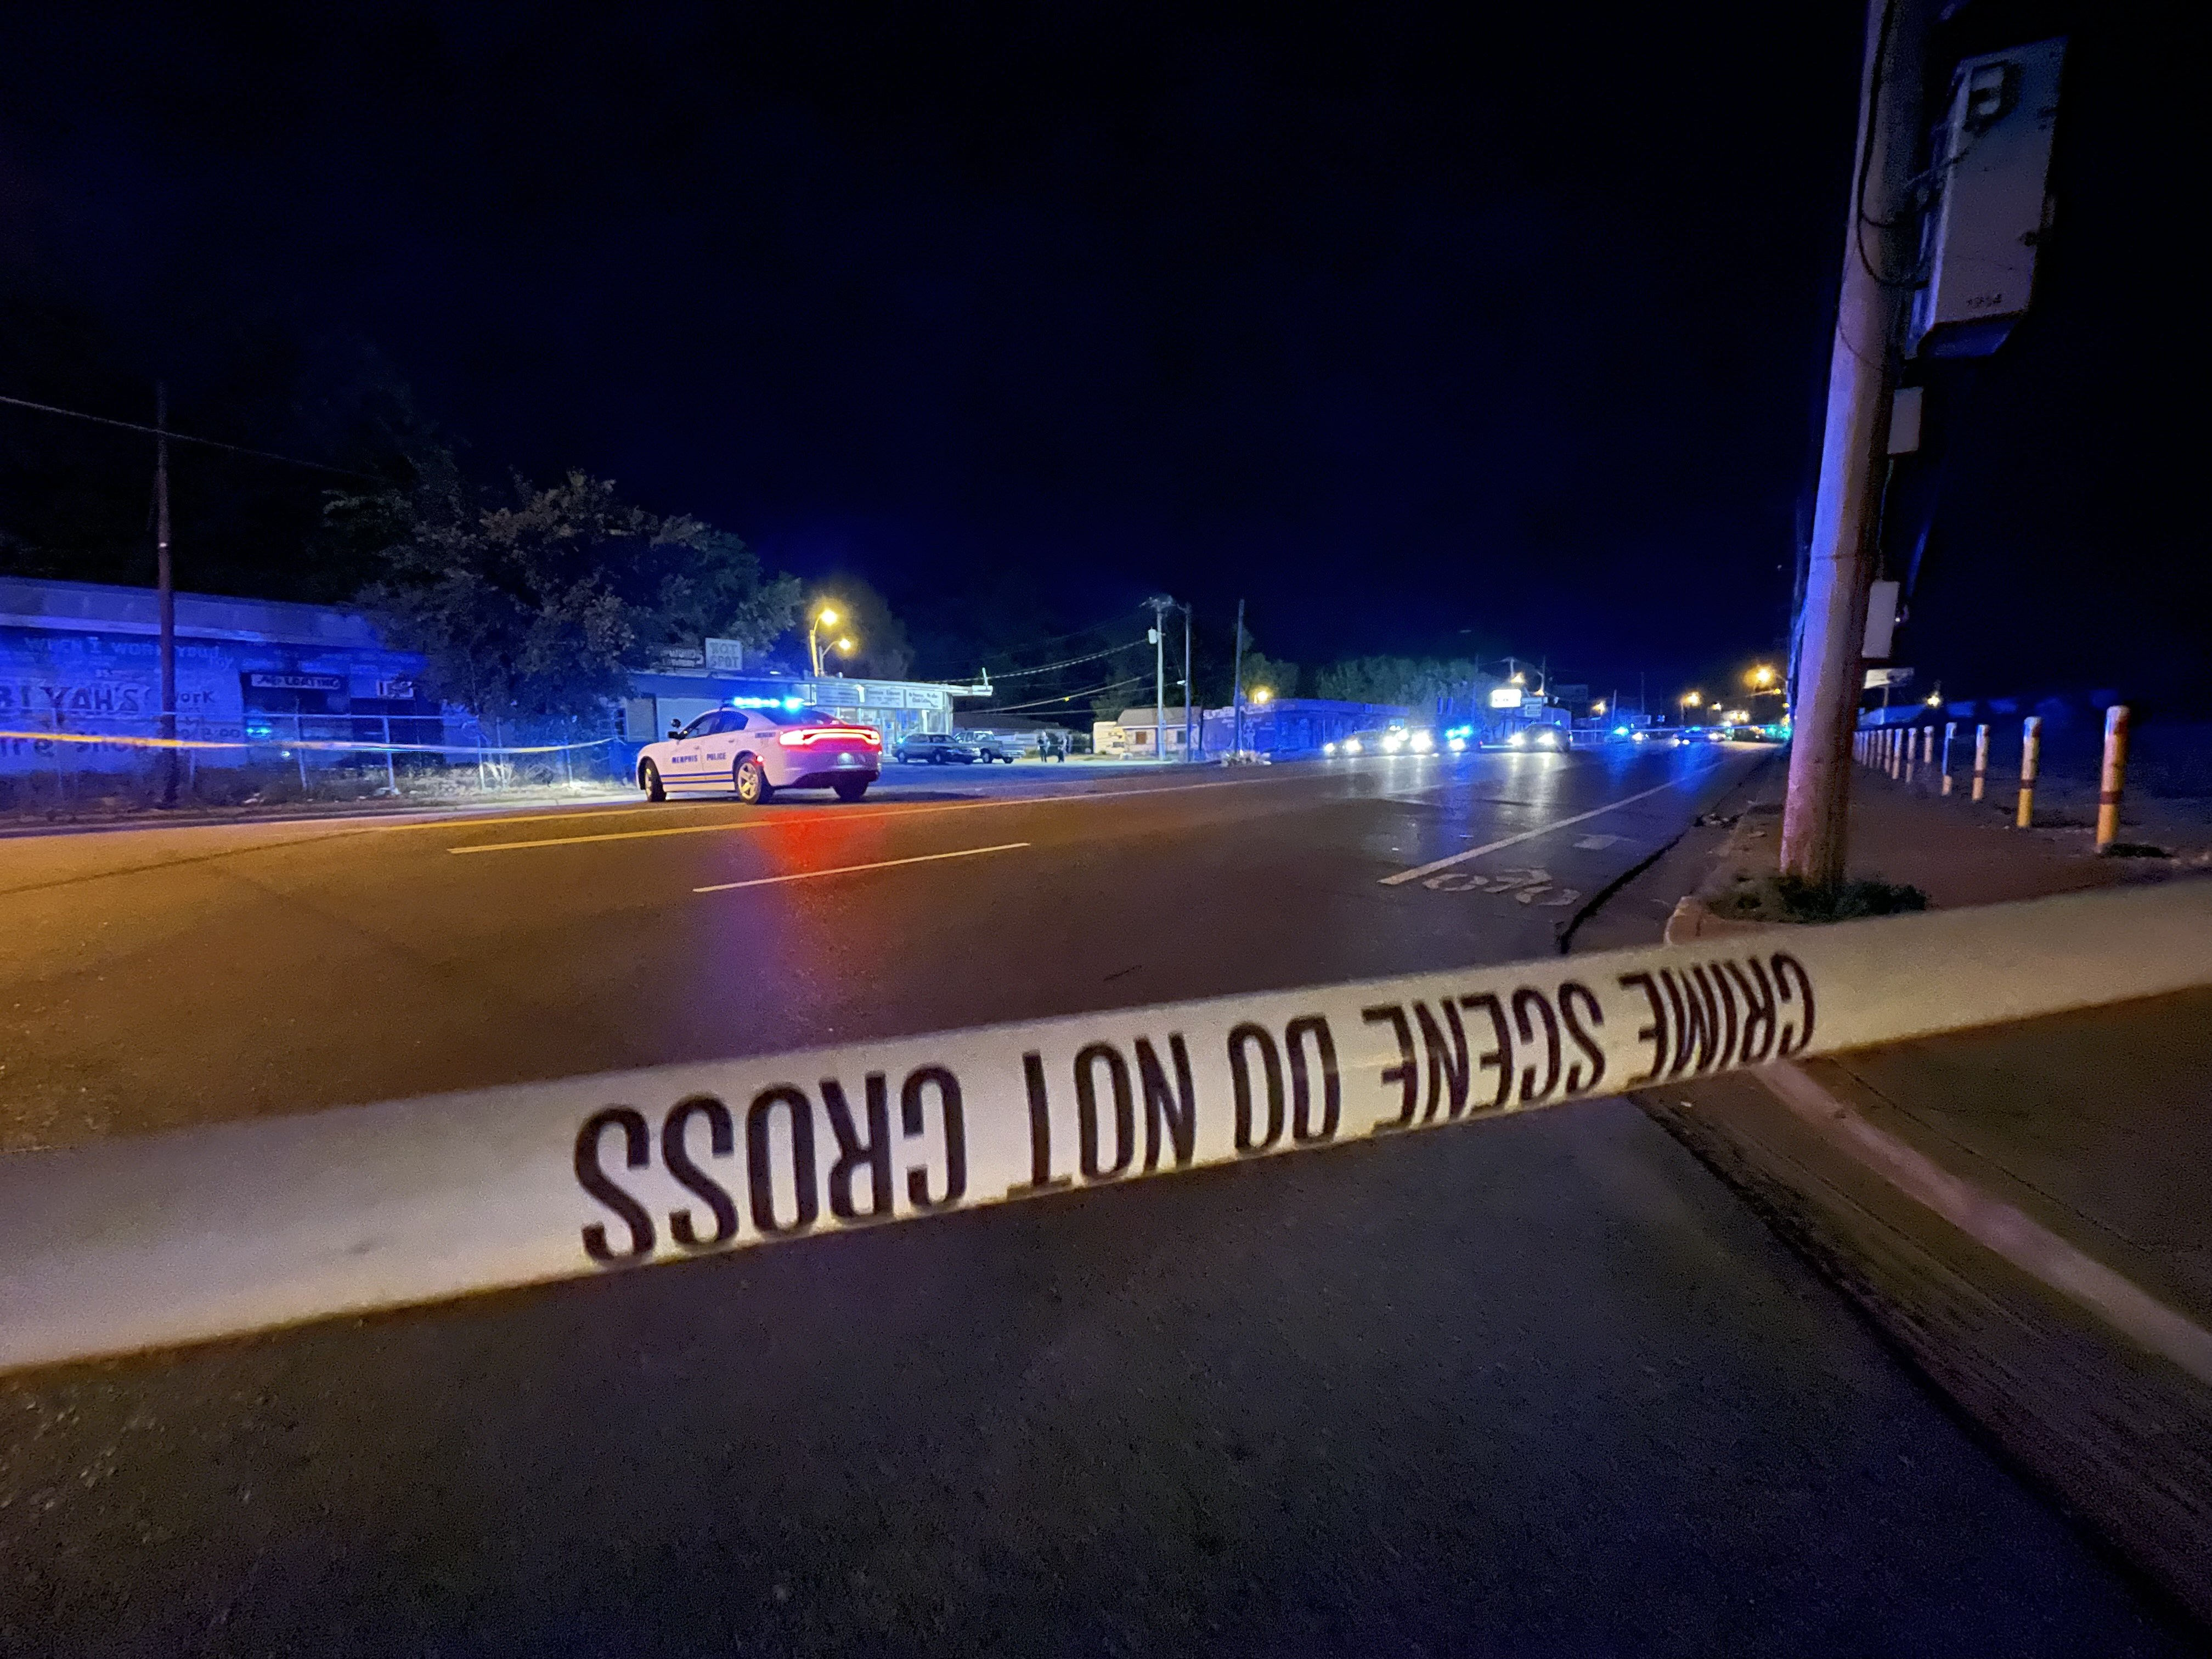 4 people killed in less than 4 hours overnight Thursday in Memphis, police say